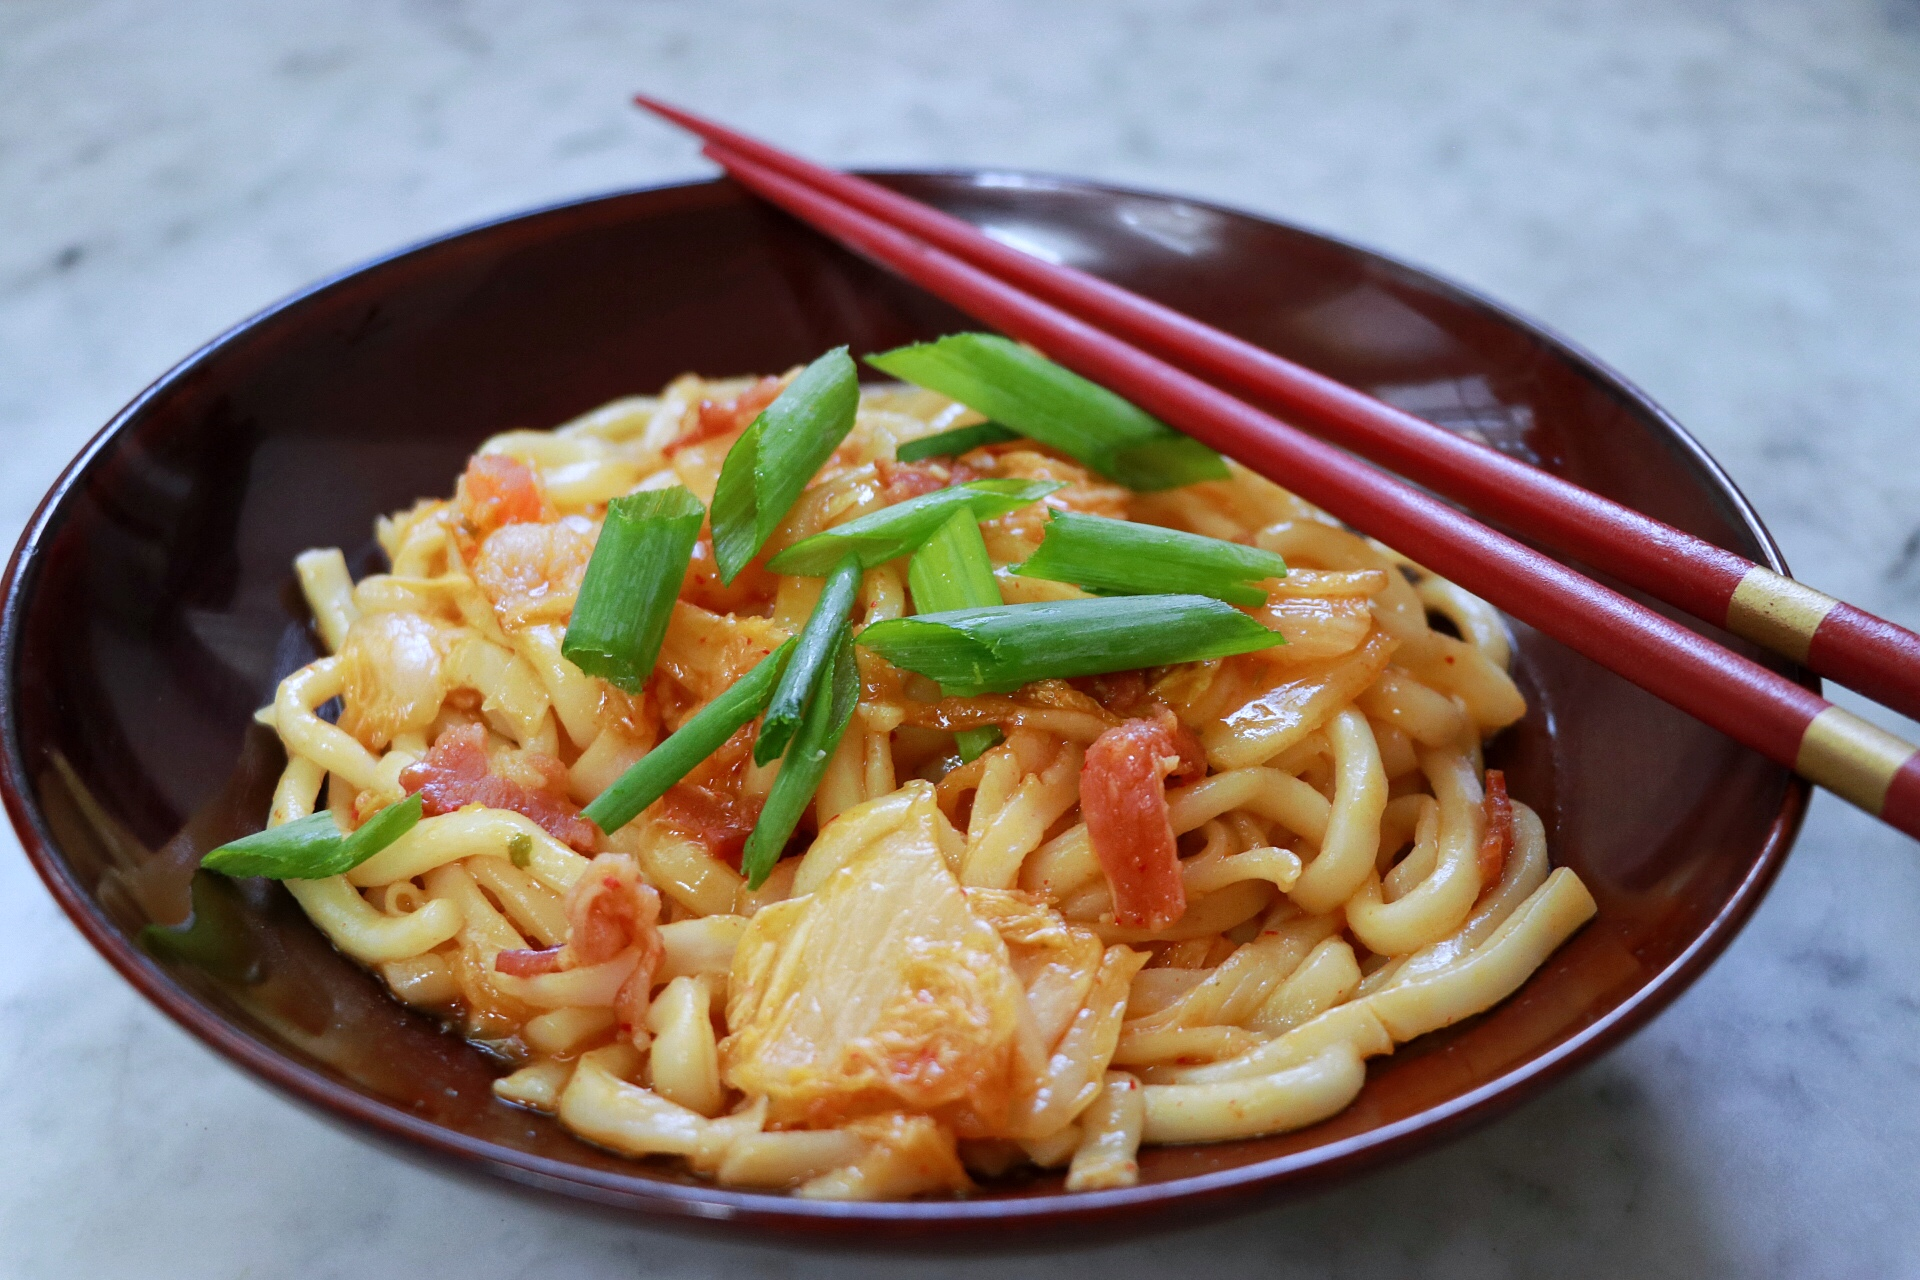 "Fresh udon noodles are stir-fried with bacon, kimchi, and garlic in a sweet and spicy sauce. ""This is a sweet, nutty, and spicy kimchi udon stir-fry your whole family will love -- and it takes mere minutes to make from start to finish!"" says chpmnk42. ""Top with cooked eggs and shredded nori if you like."""